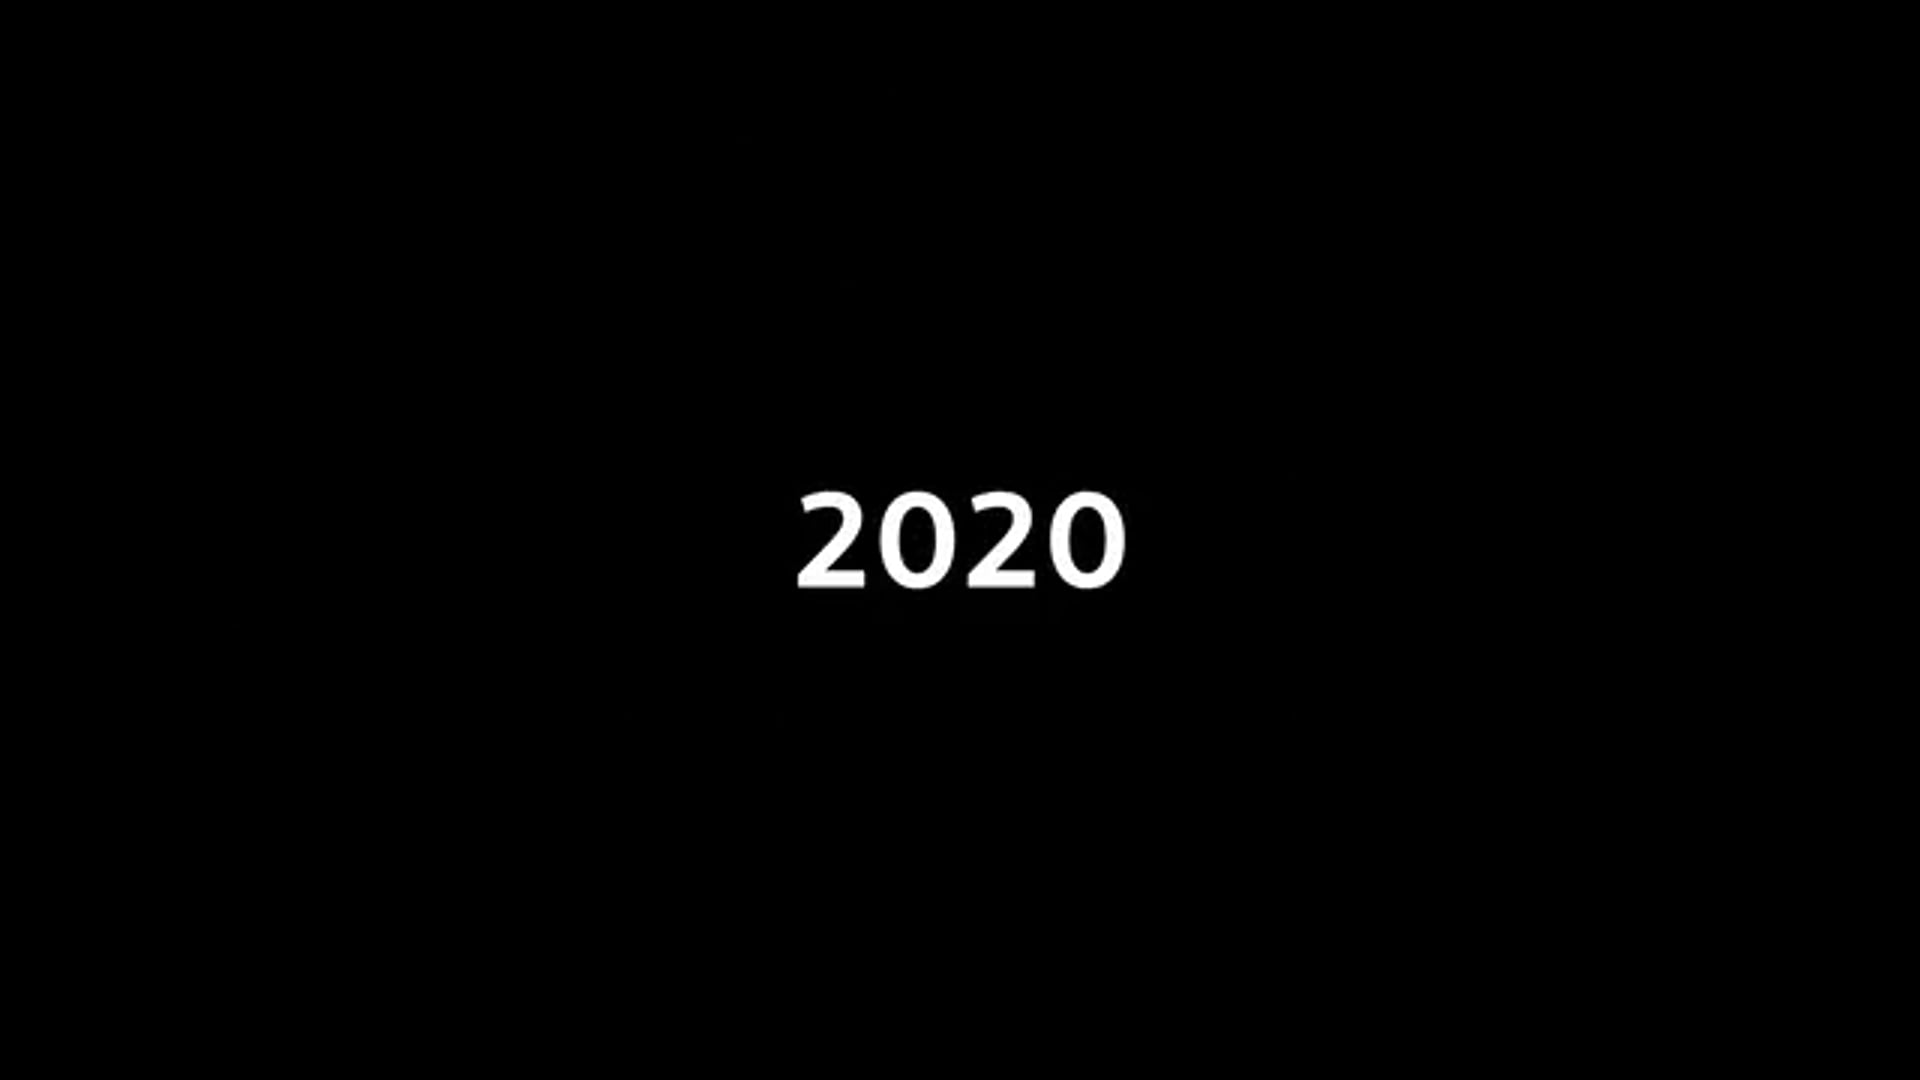 2020: Don't Blink [Final Project - Zachary Galen]